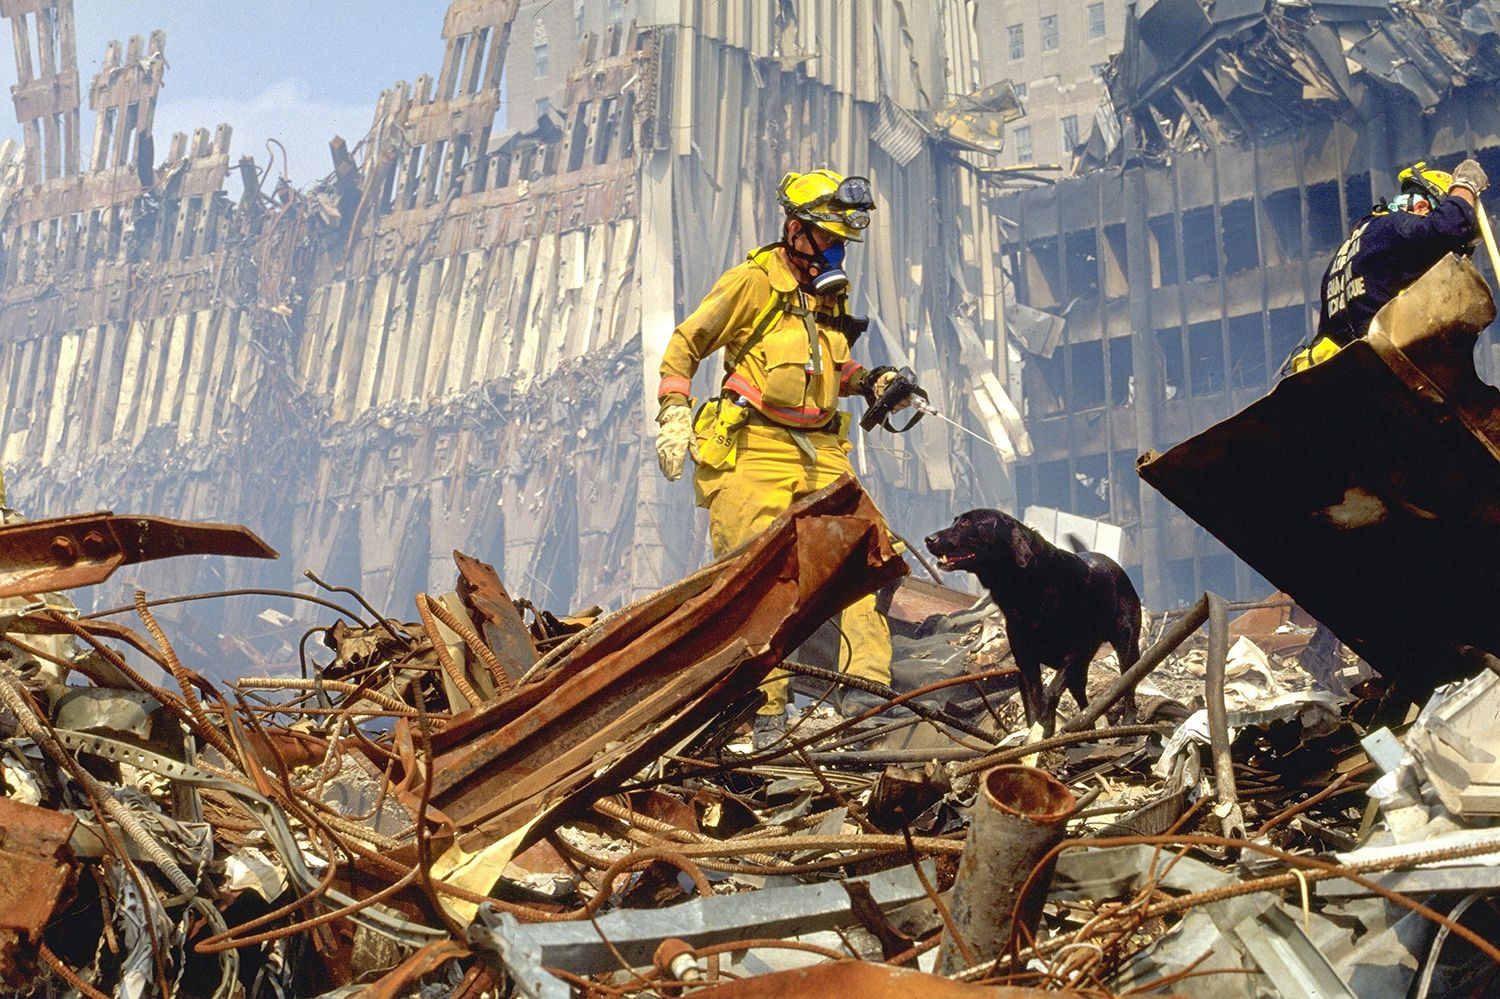 9/11 'hero dog' saved woman trapped in rubble for 27 hours (Photo: Animal Planet)